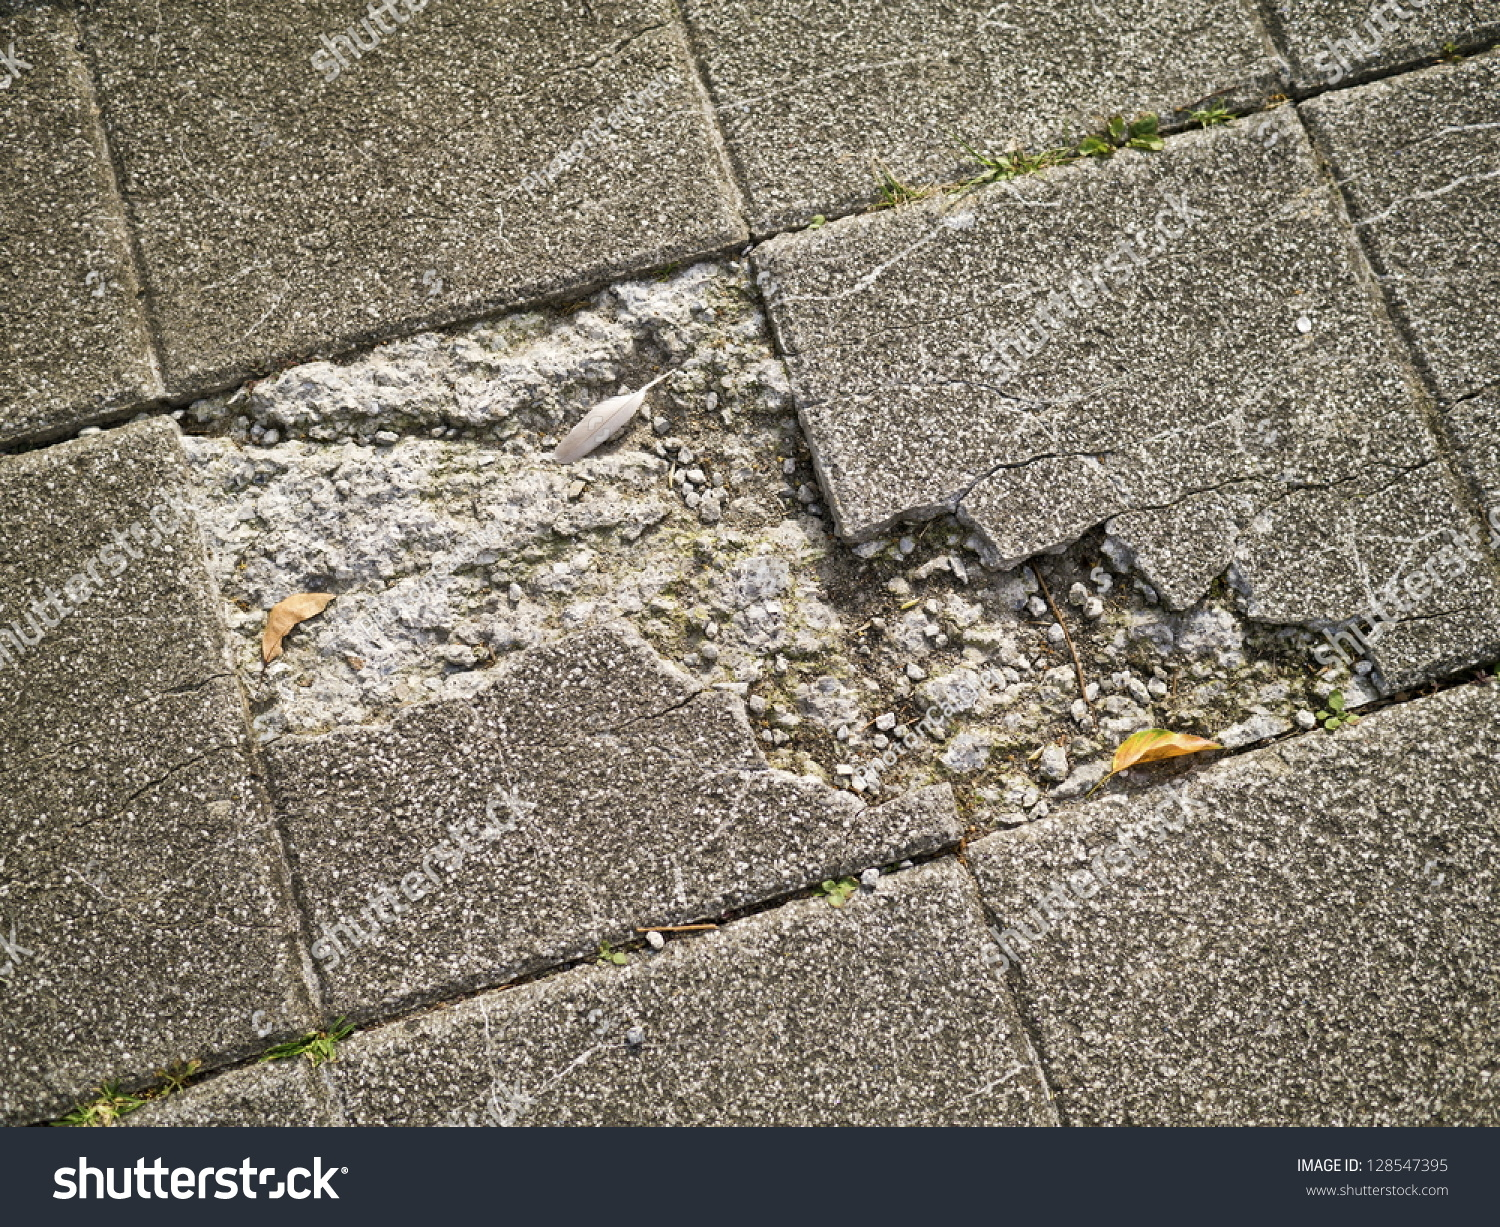 Can i cover asbestos floor tiles